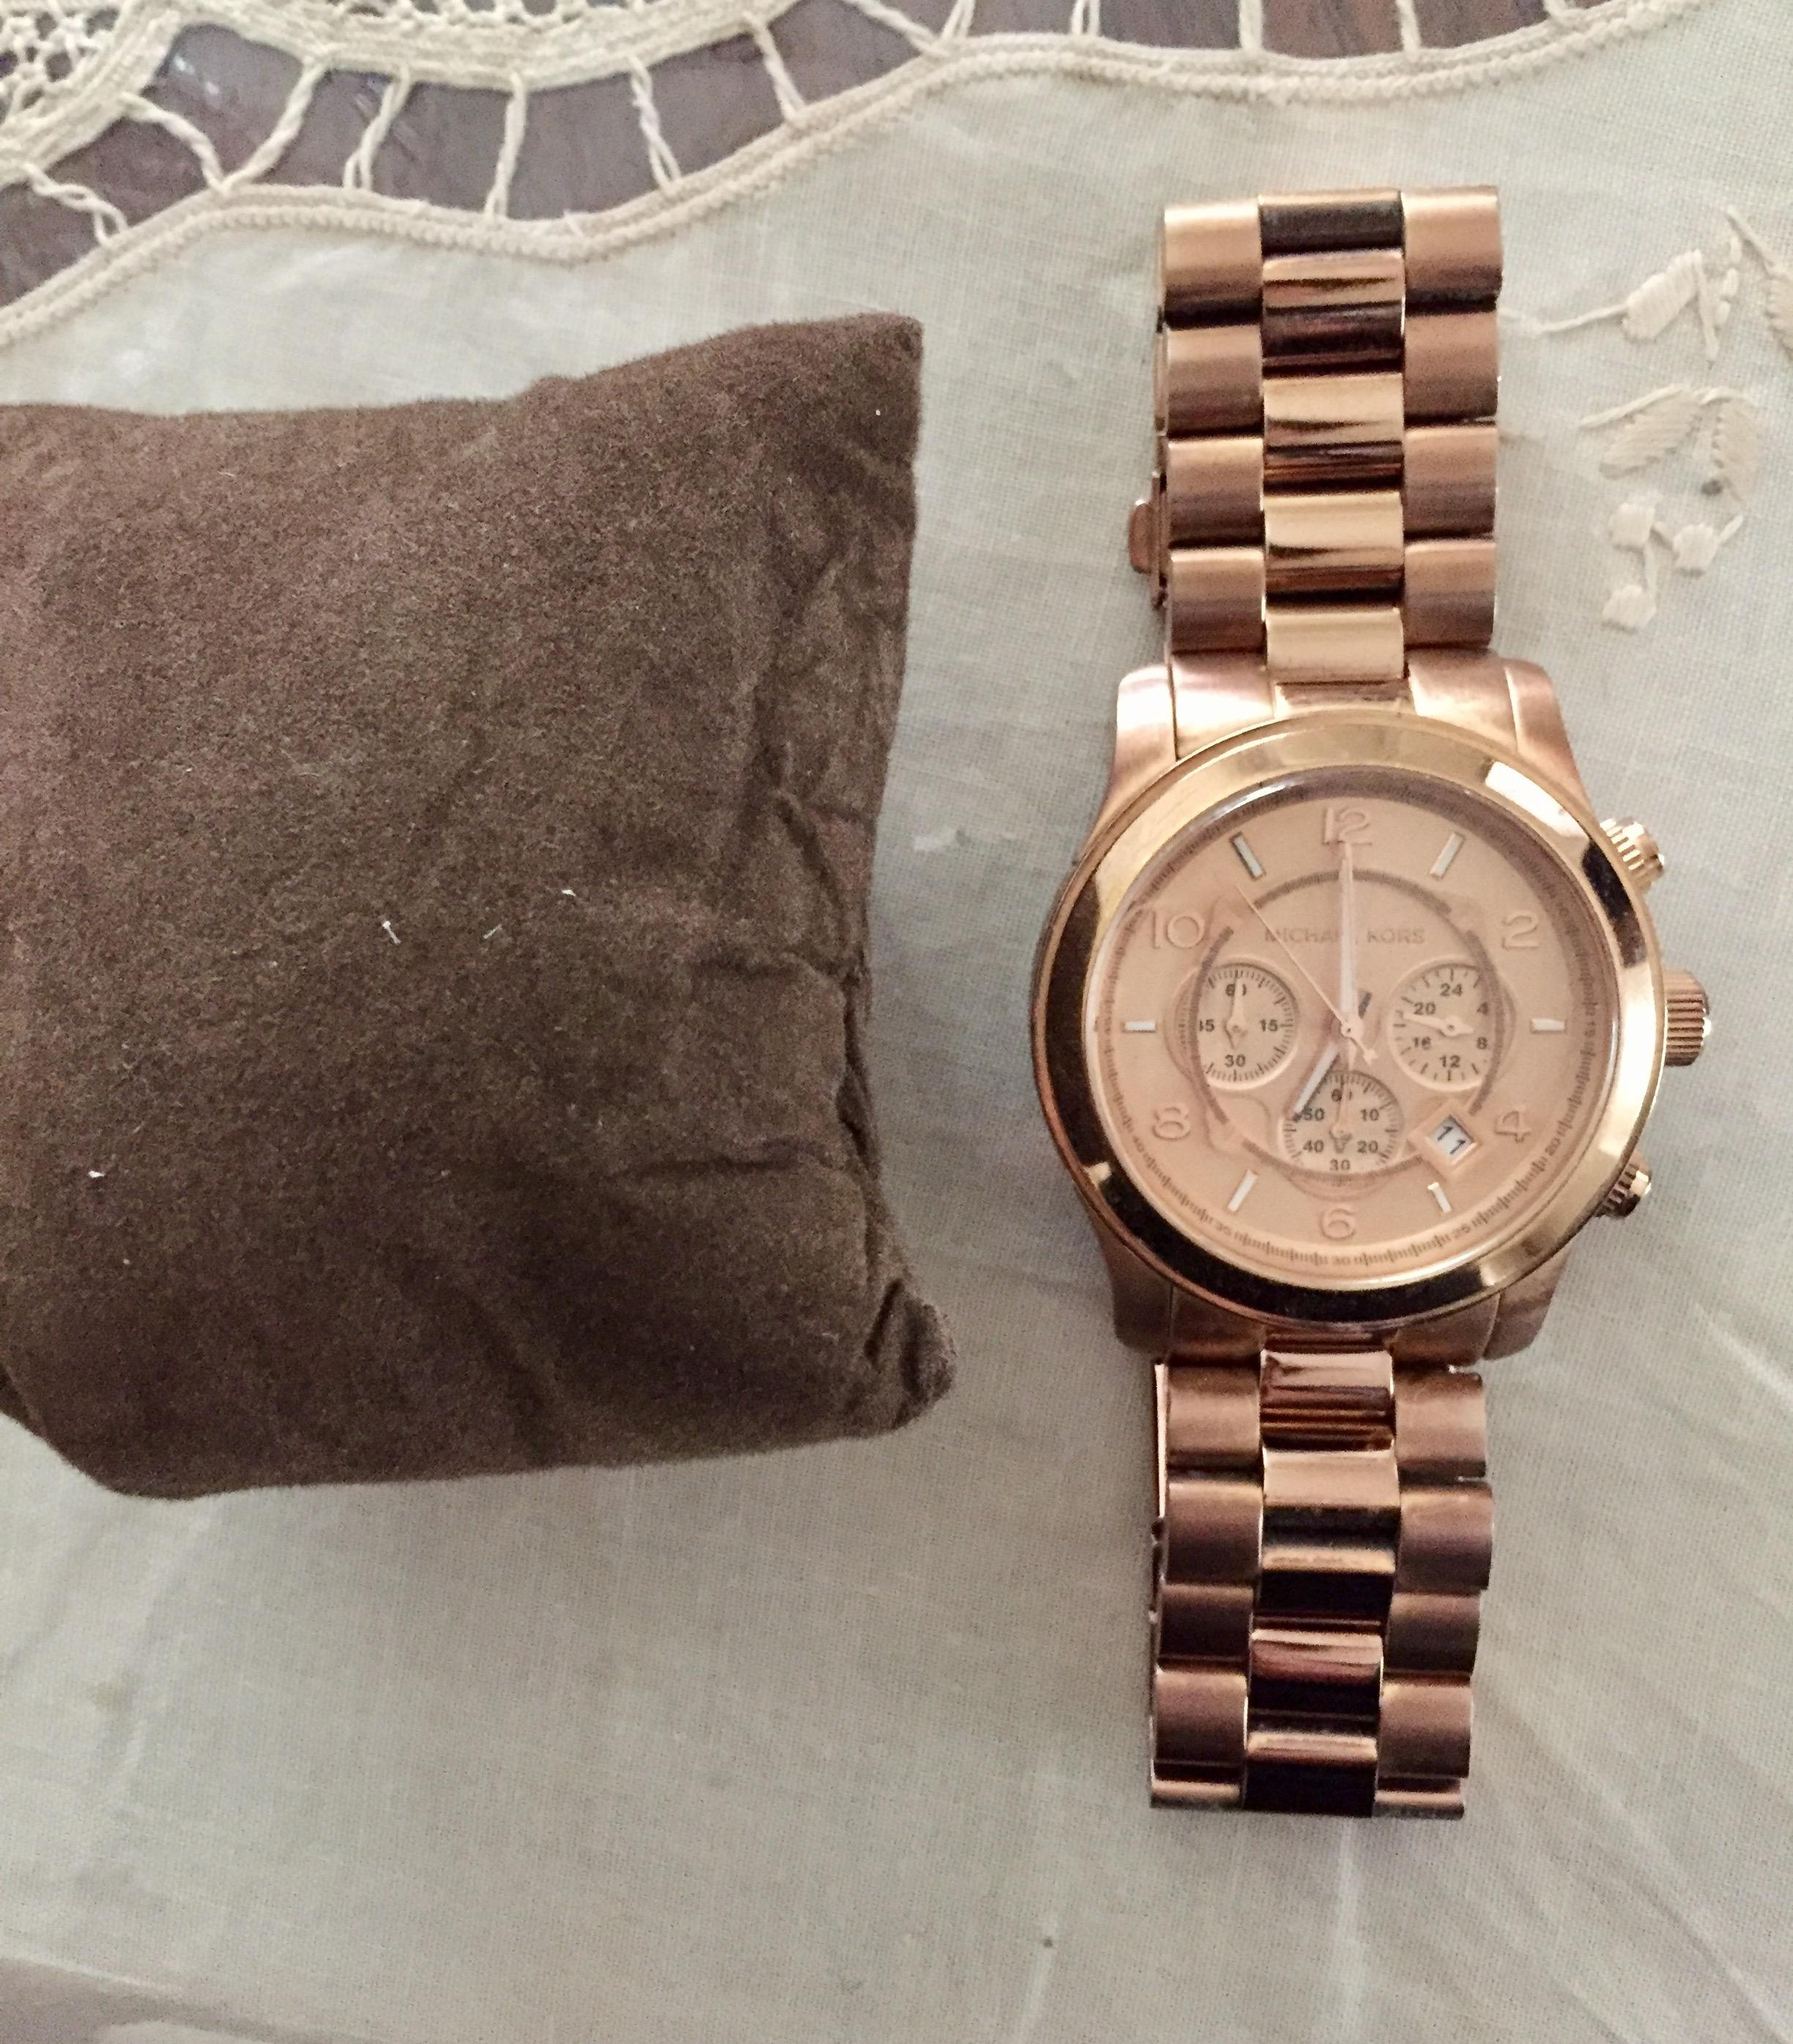 Michael Kors Rose Gold 'large Runway' Plated 45mm Watch 61% off retail